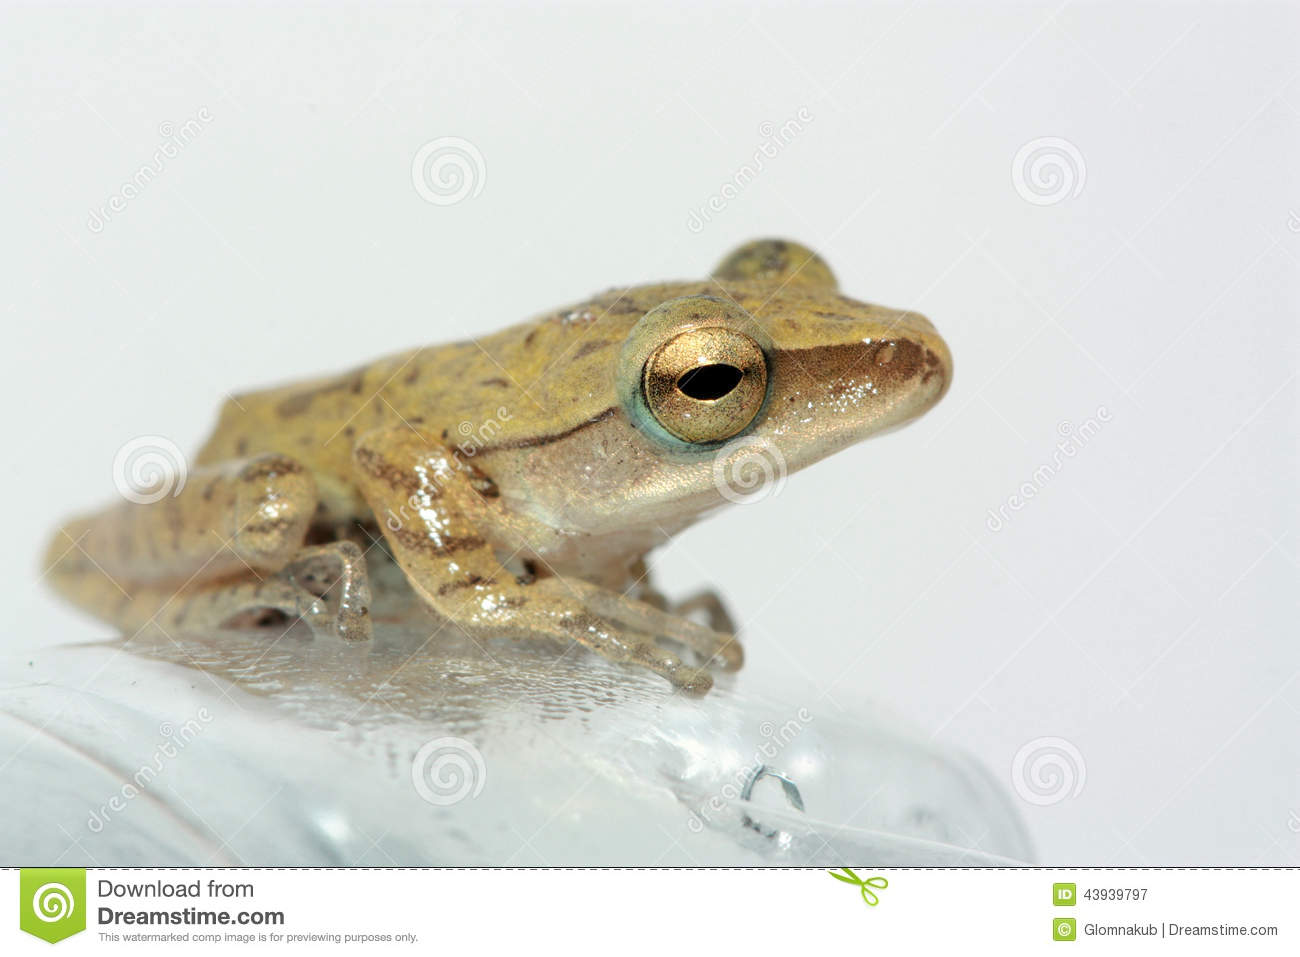 Amphibians animals pictures with names - photo#24